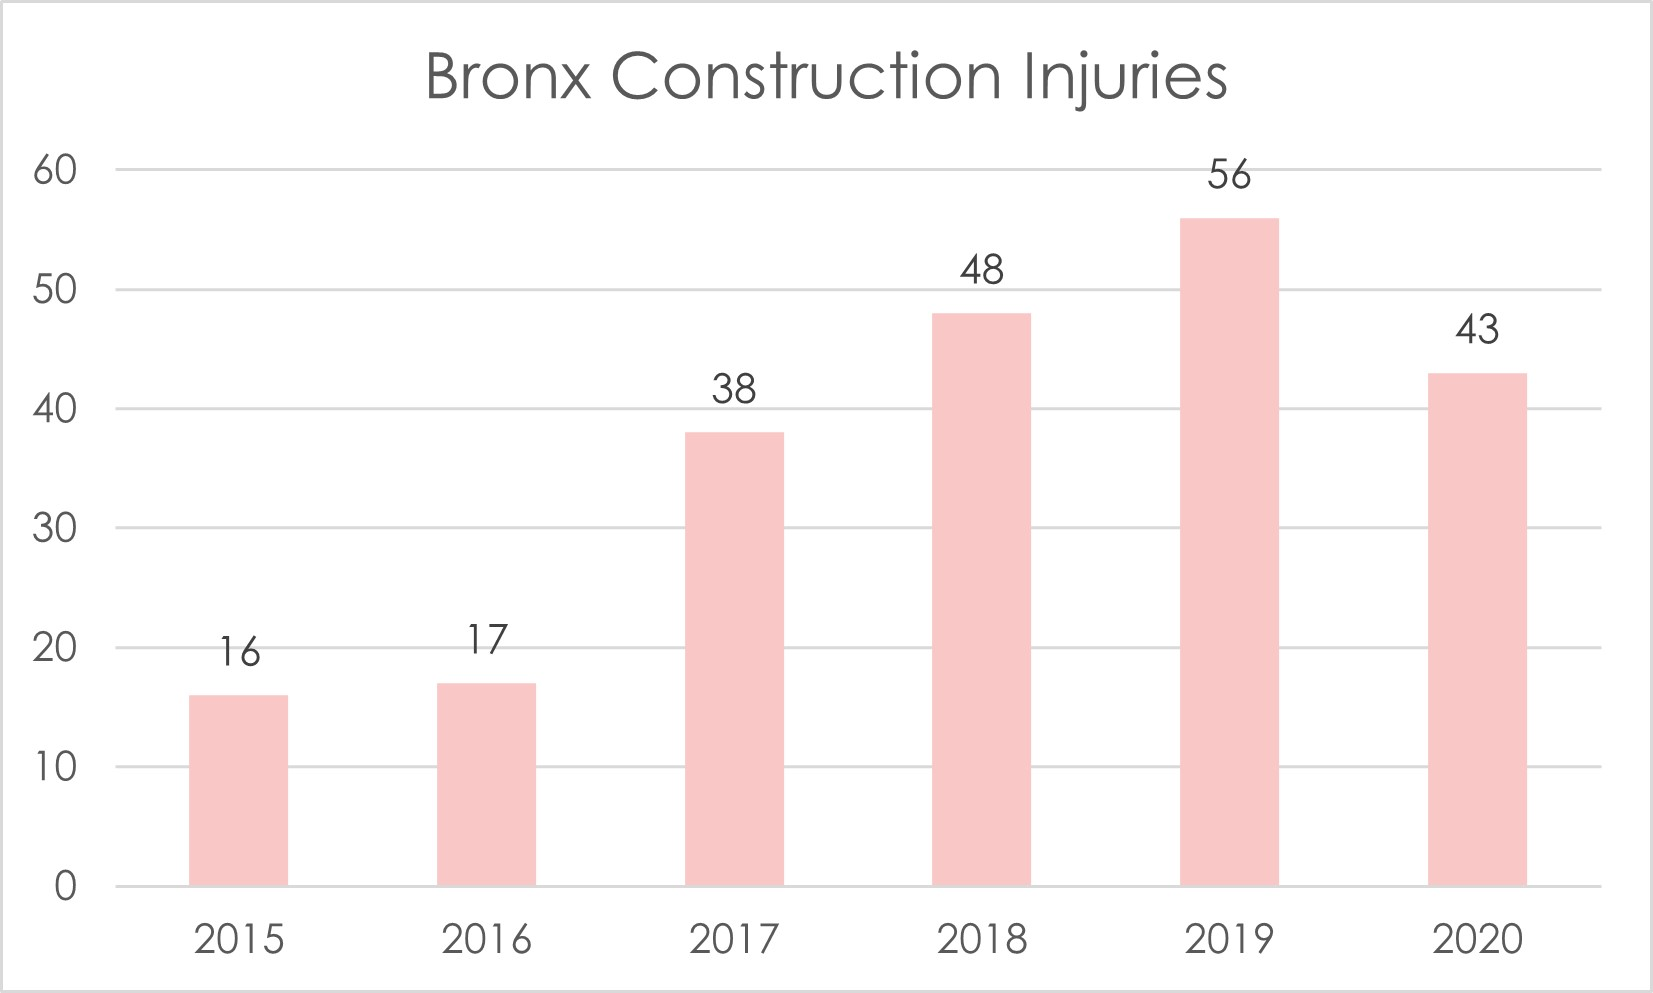 Bronx construction accident injuries 2020